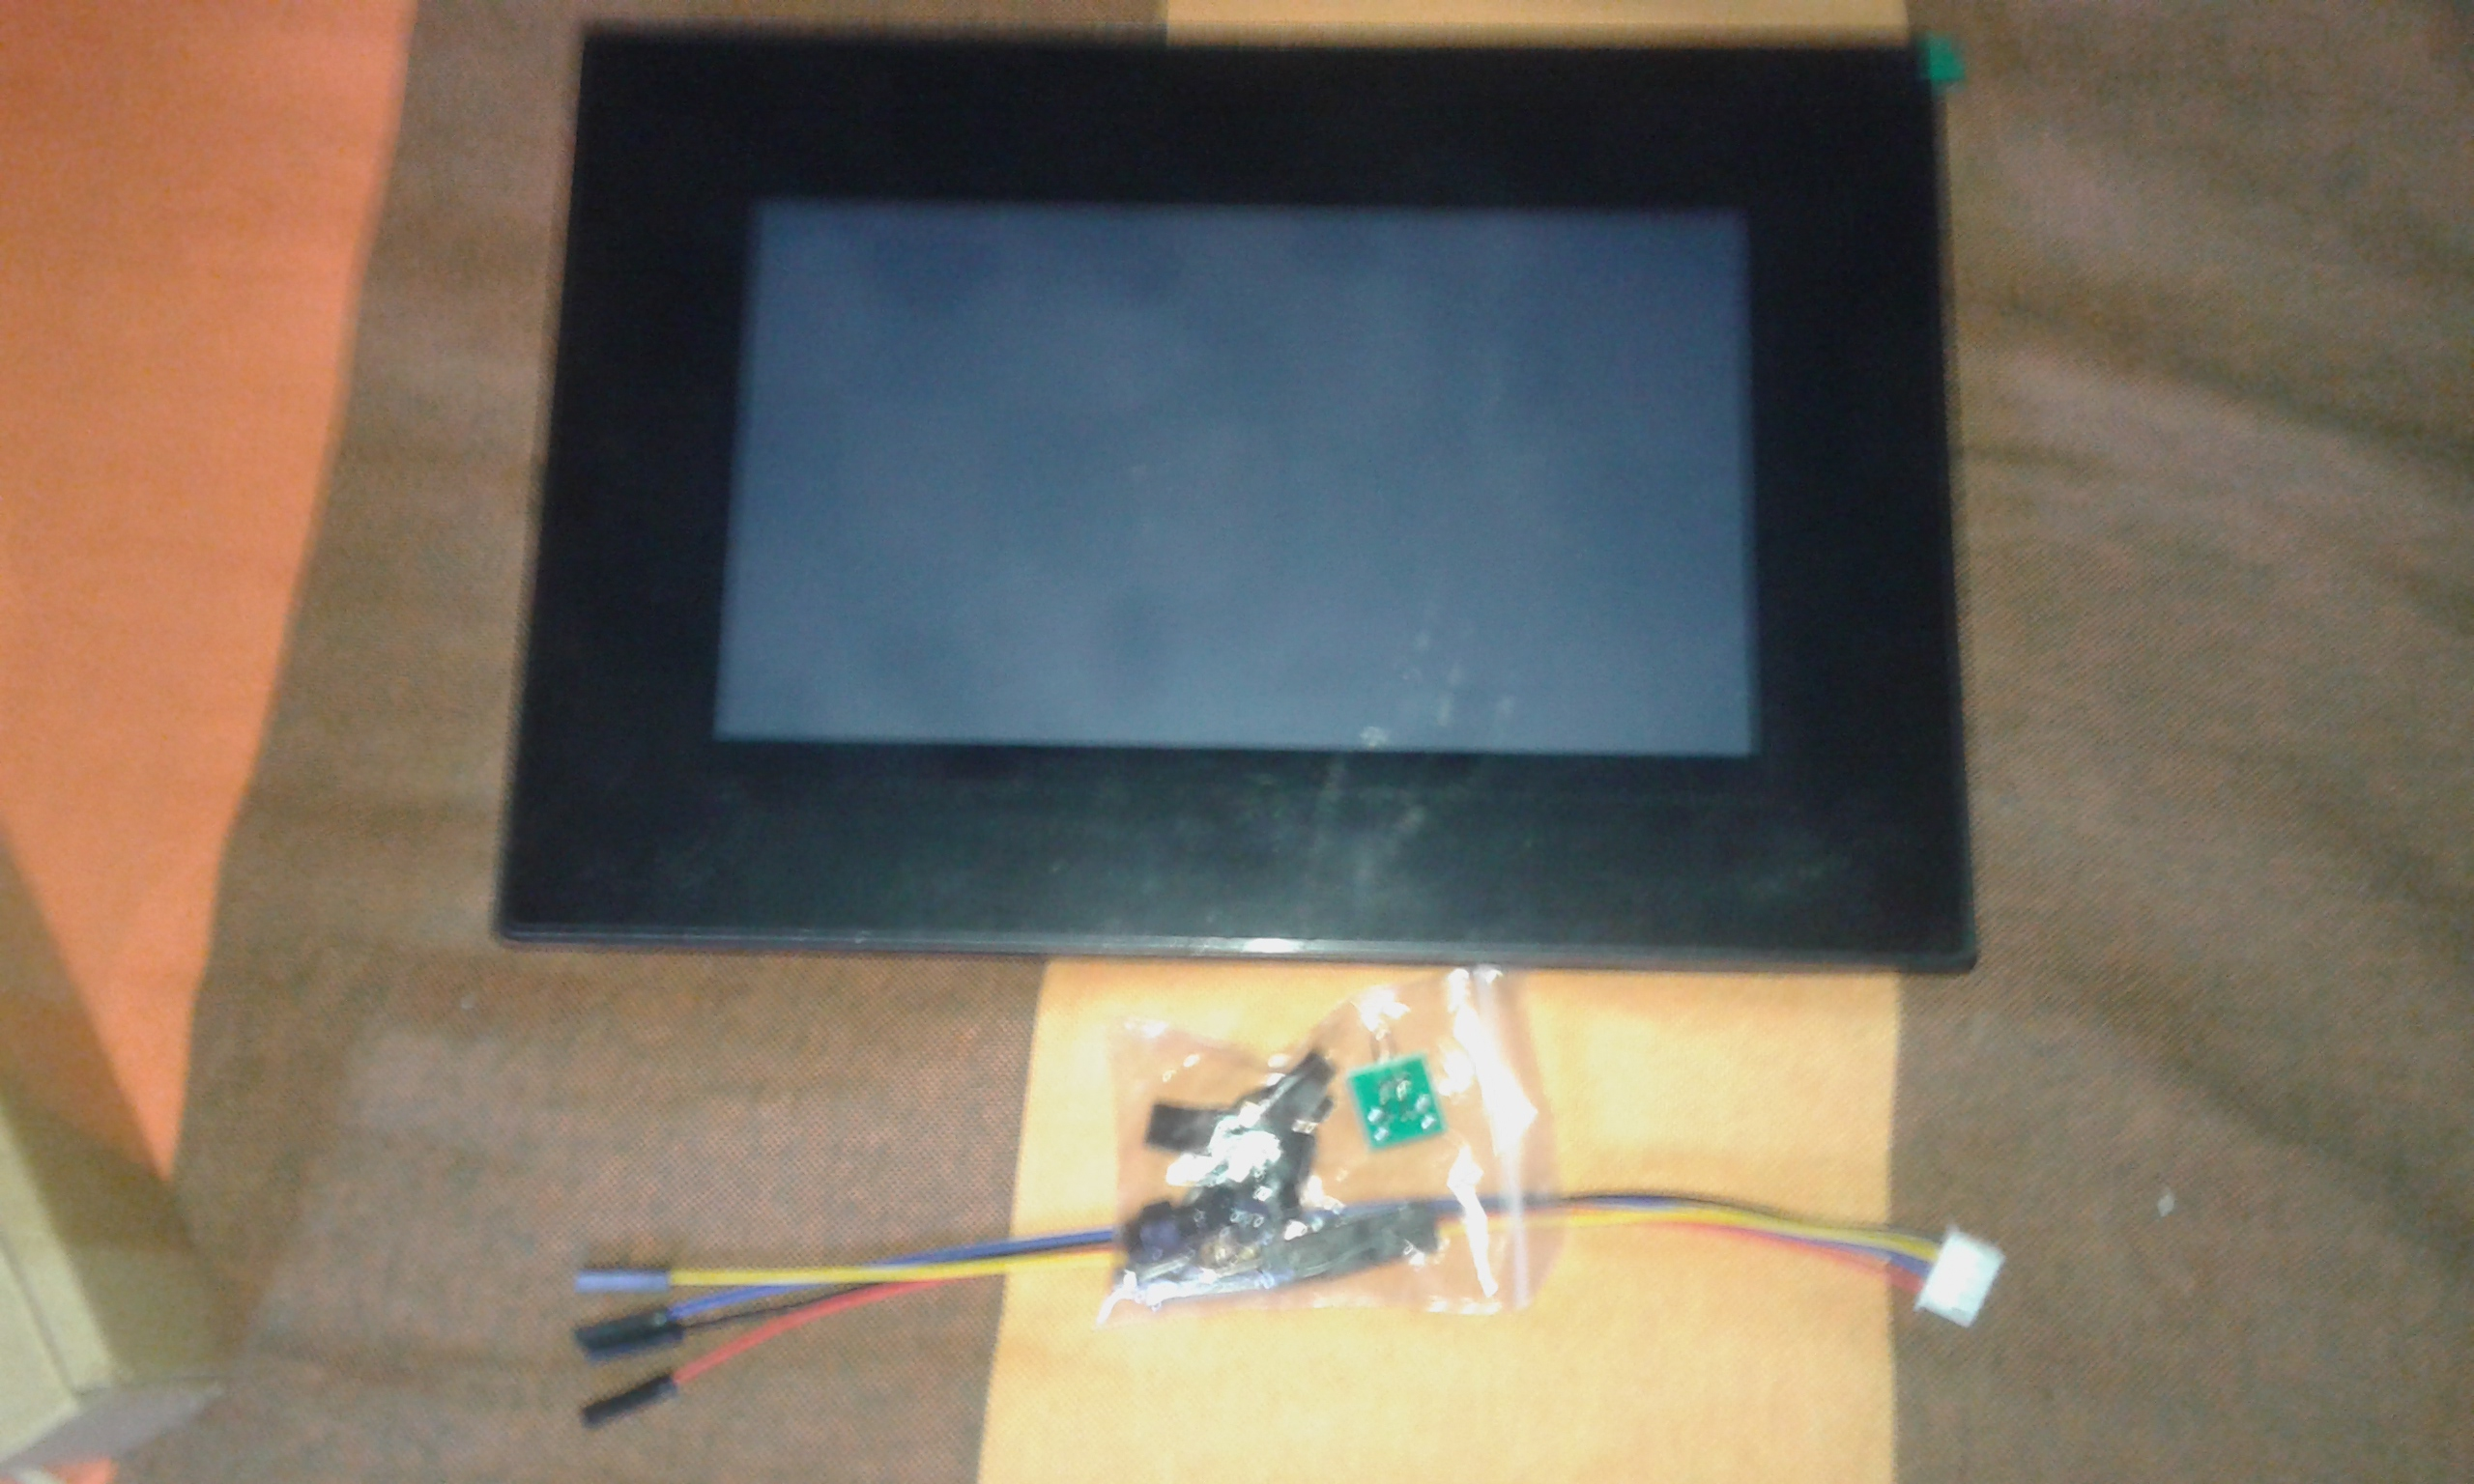 """7.0"""" Nextion Enhanced HMI Intelligent USART UART Serial TFT LCD Module Display Resistive Capacitive Touch Panel w/ Enclosure"""